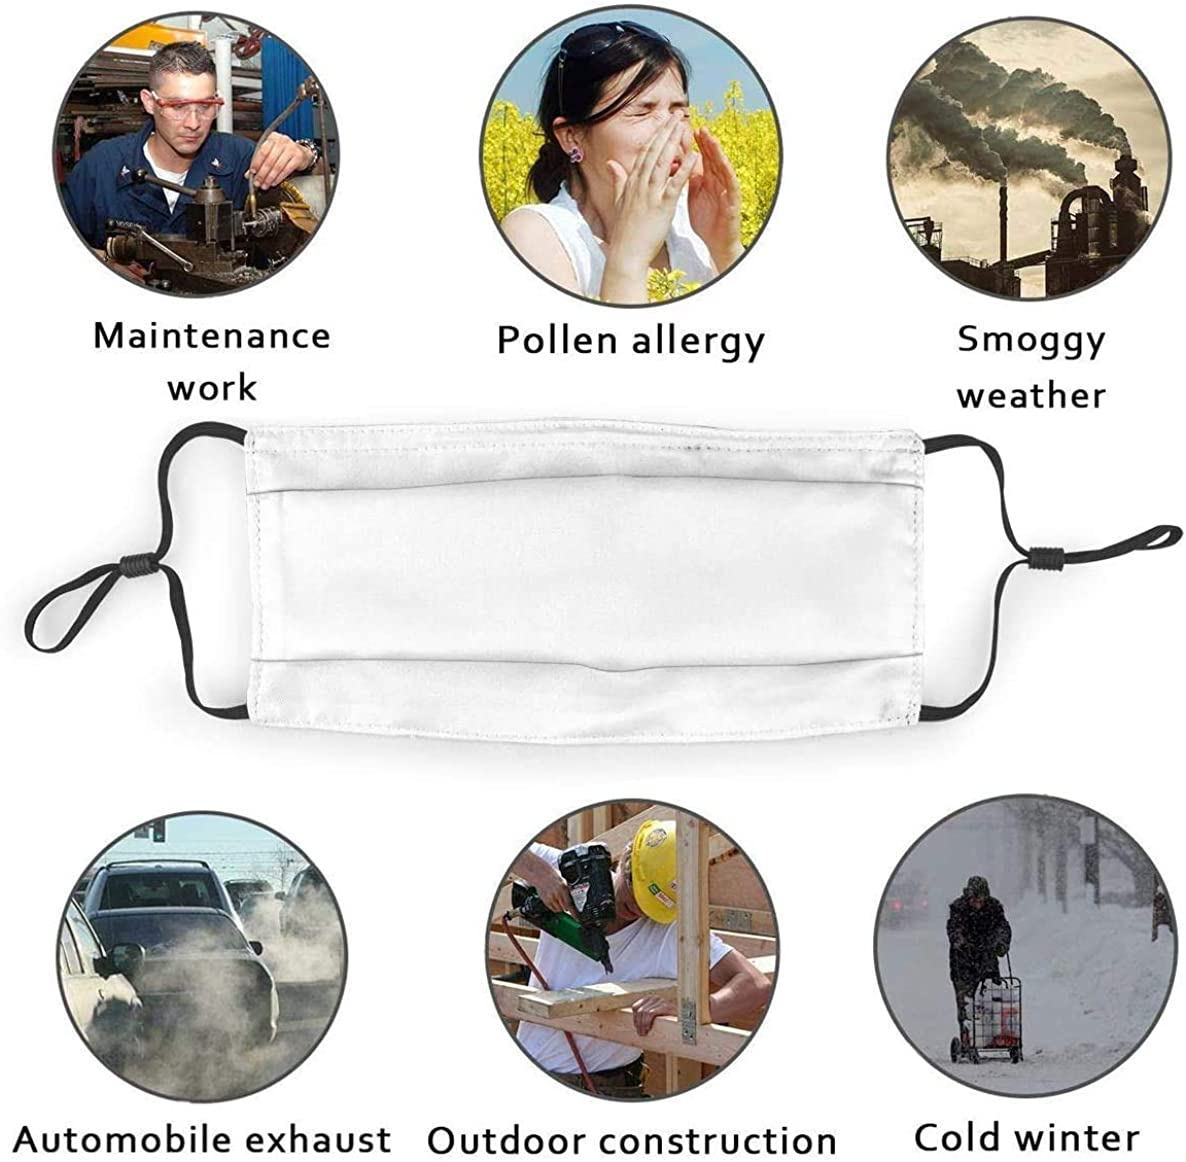 977 So-n-ic and M-ar-io Reusable Face Bandana Breathable Mouth Coverings Balaclava Scarf for Outdoor